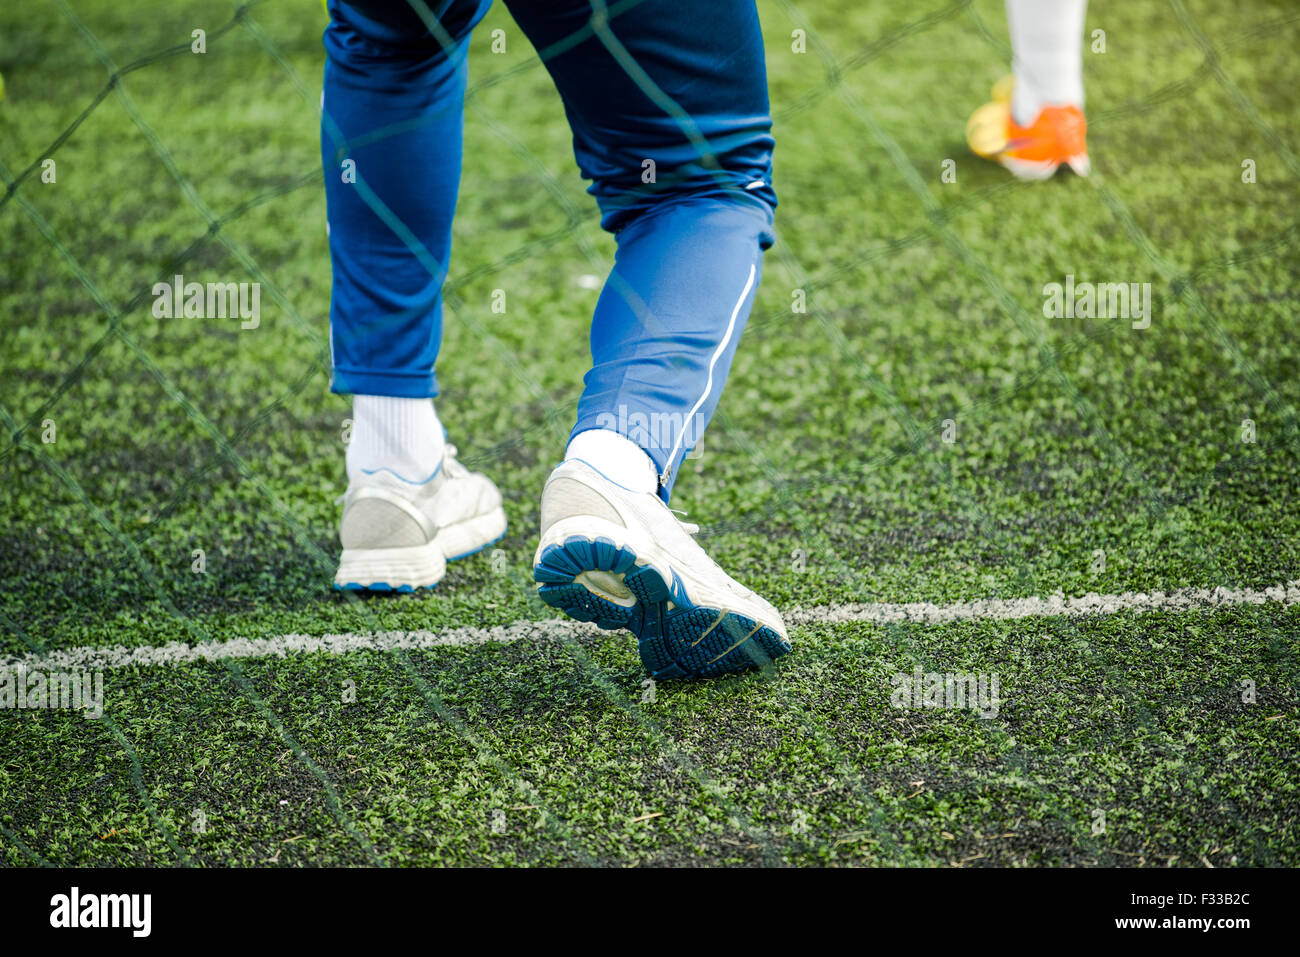 Kids soccer coach on football pitch training kids in sports tactics - Stock Image